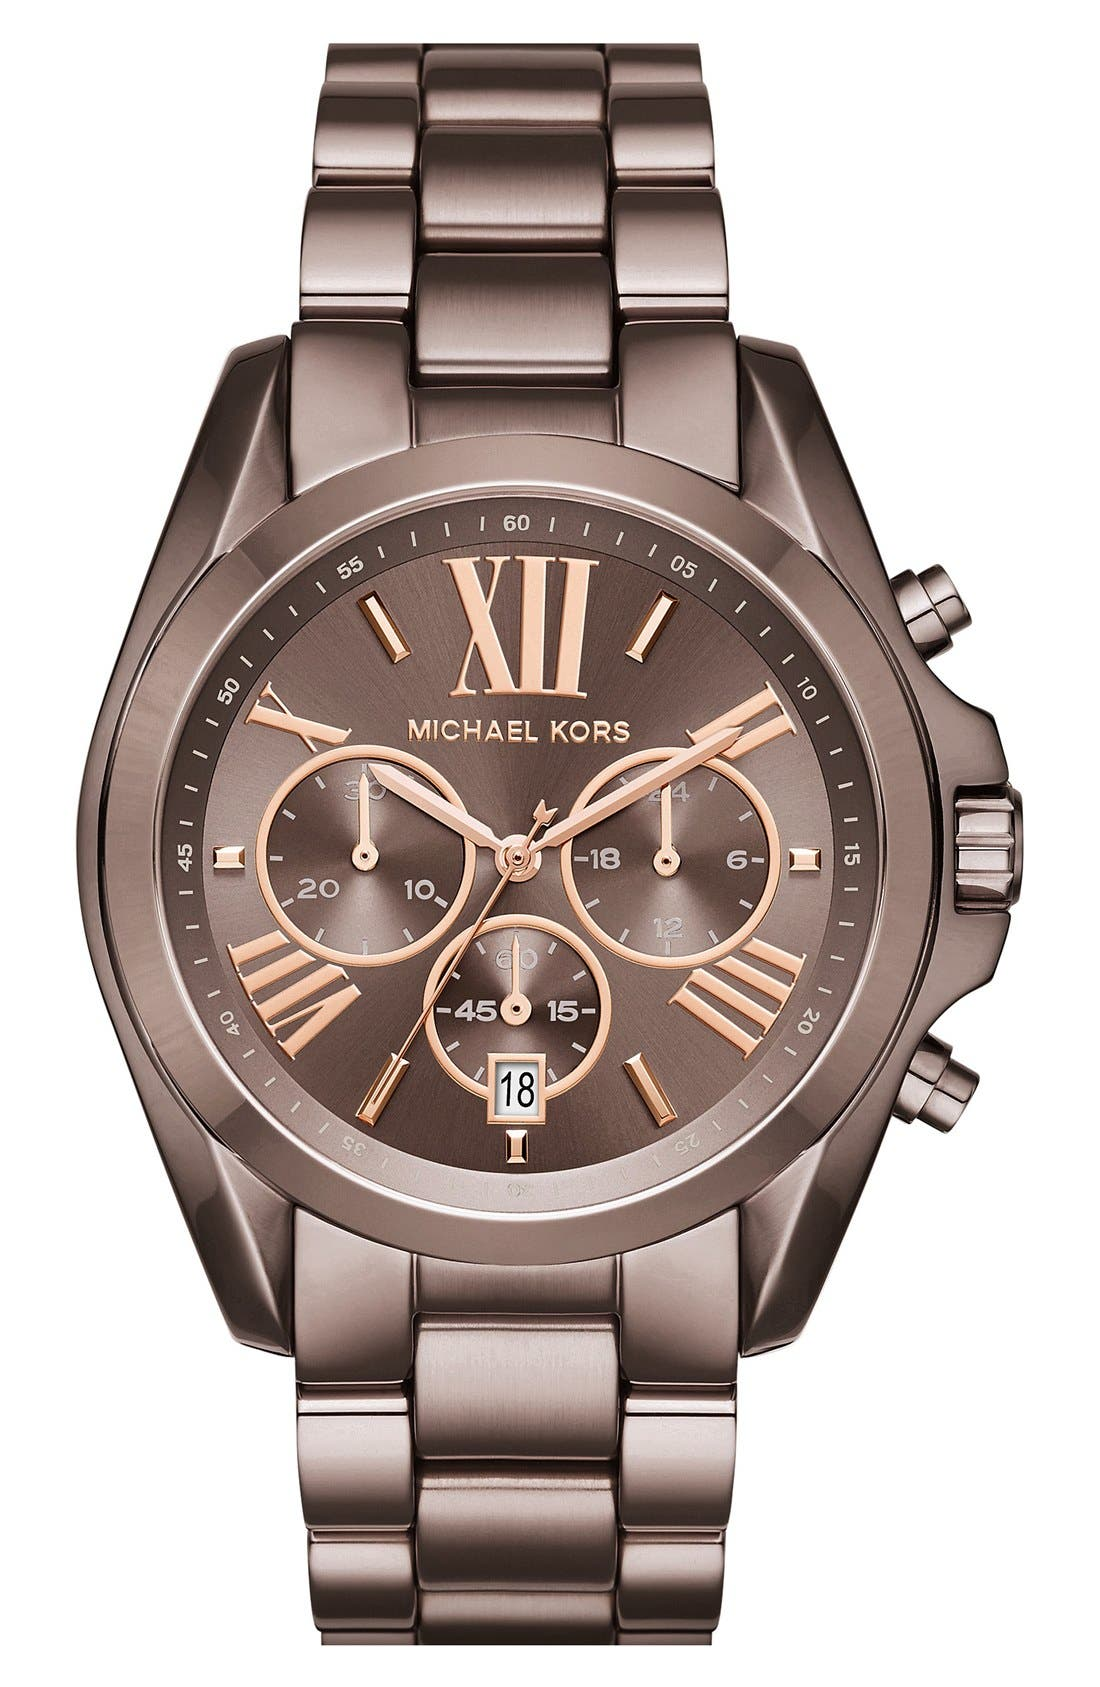 MICHAEL KORS Bradshaw Chronograph Bracelet Watch, 43mm